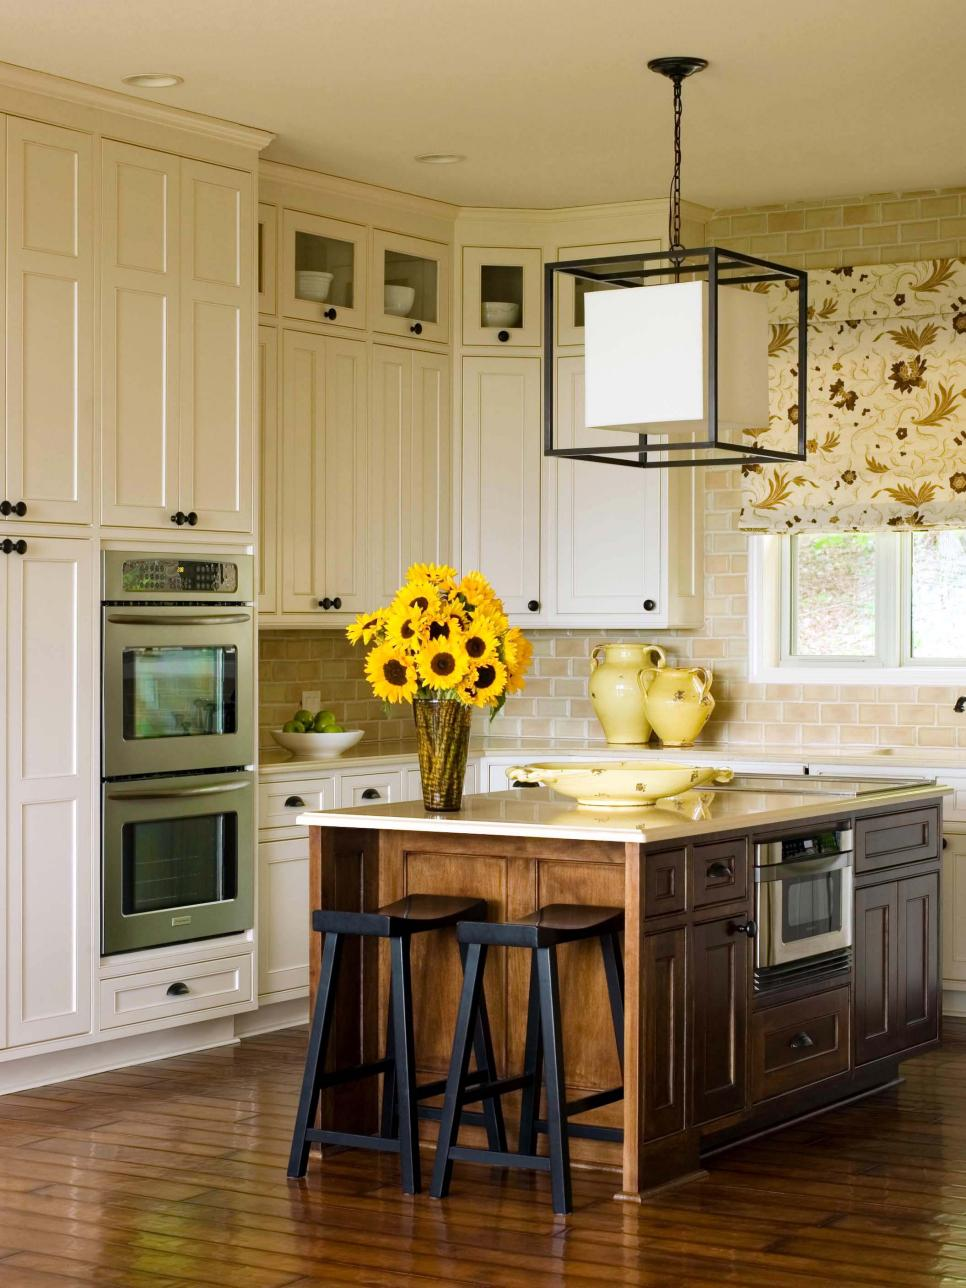 amazing How Much Does It Cost To Replace Cabinets In Kitchen #9: HGTV.com